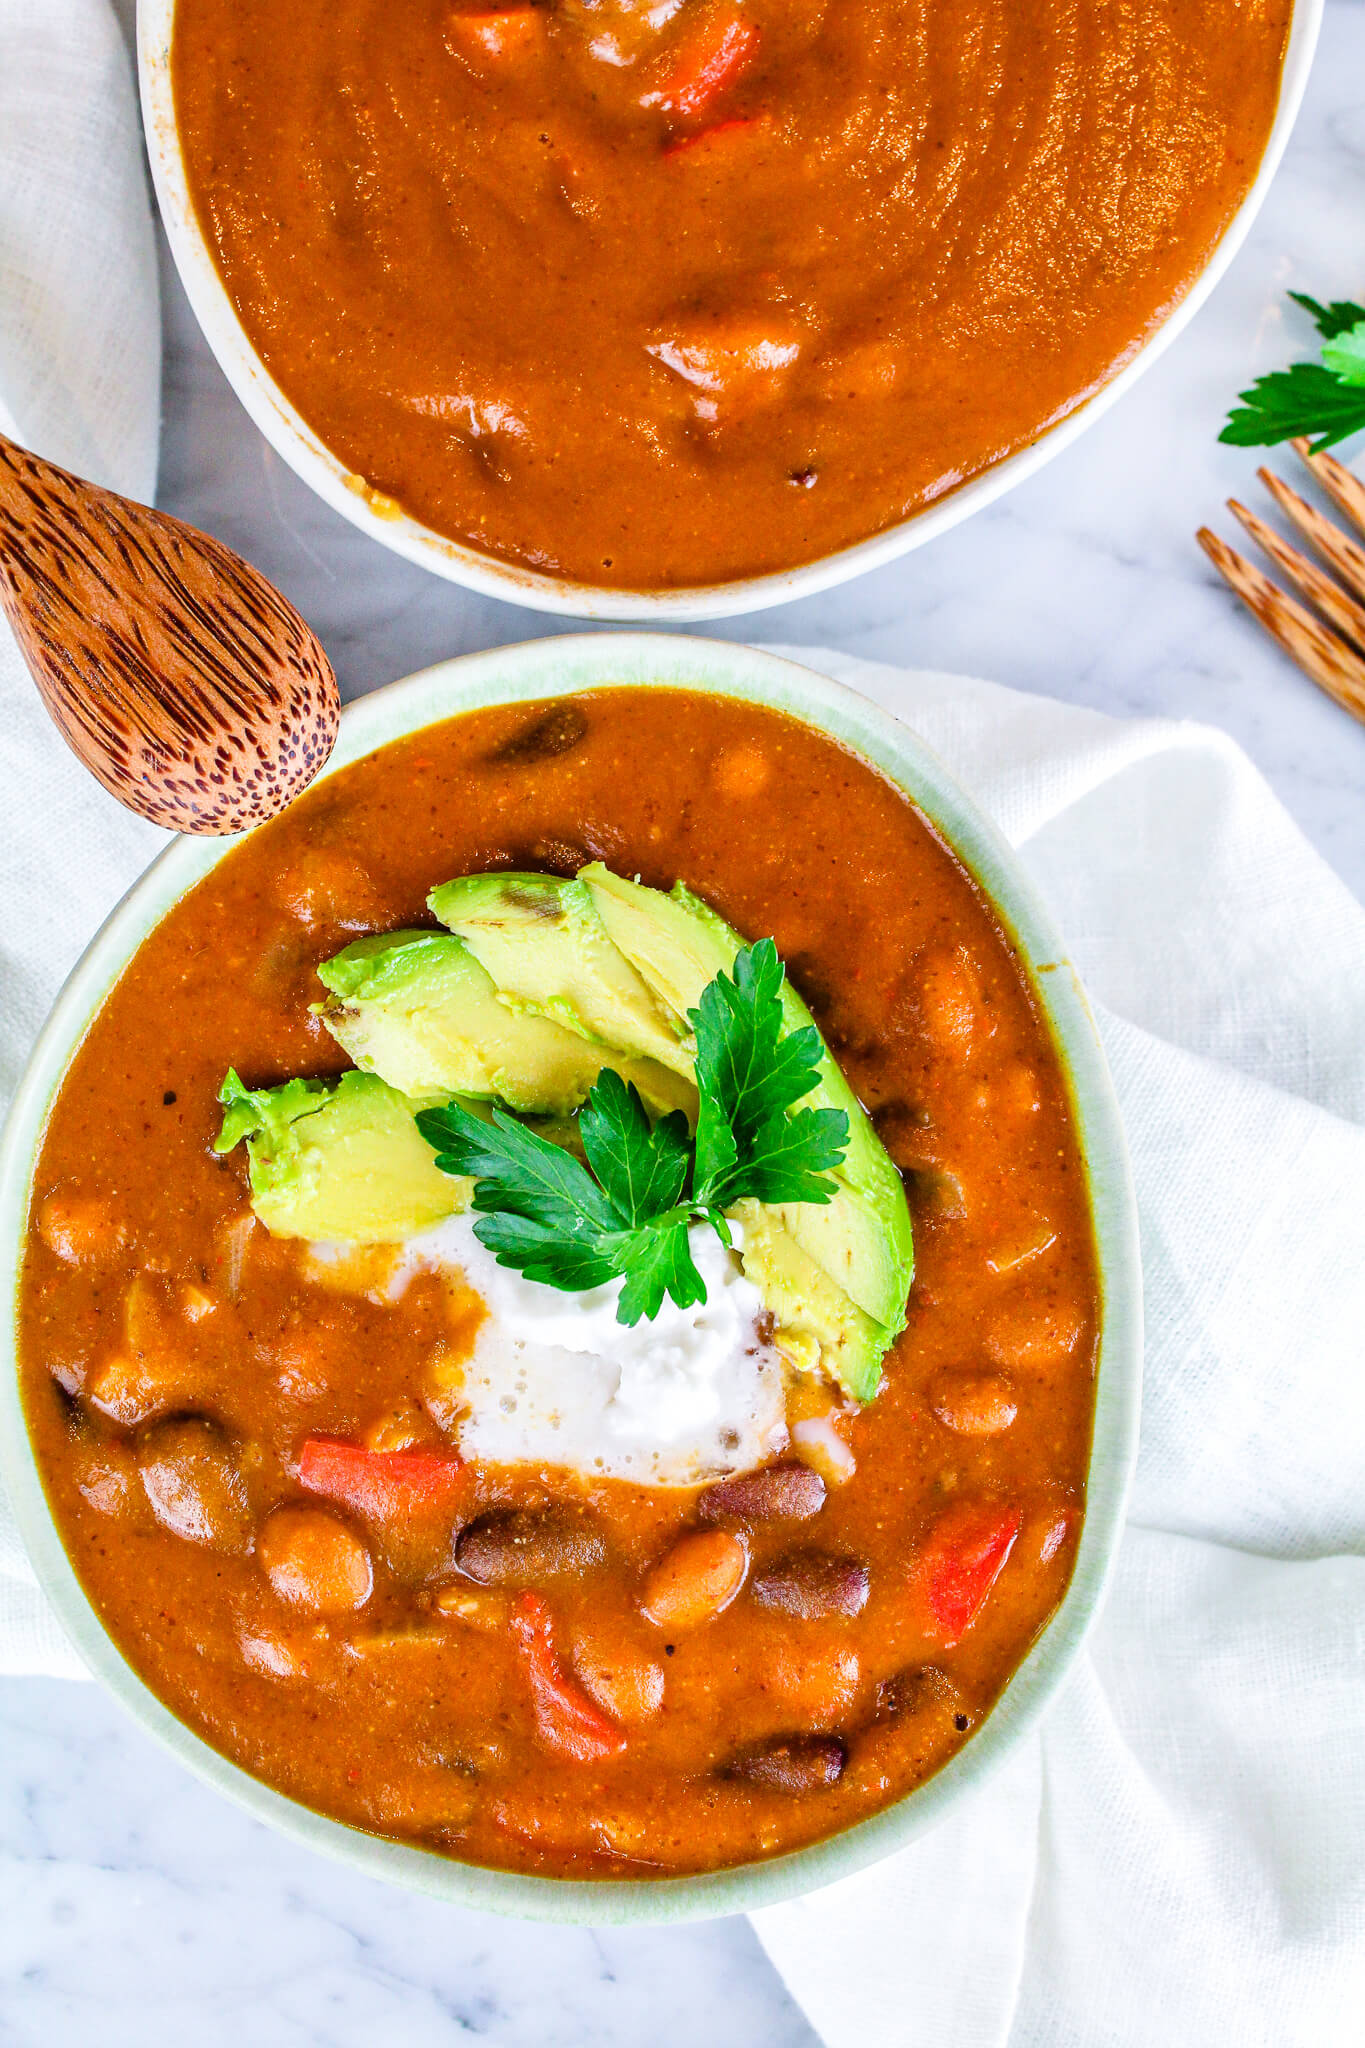 Sustainable and Plant-based Lifestyle influencer shares her delicious Simple Chili recipe!